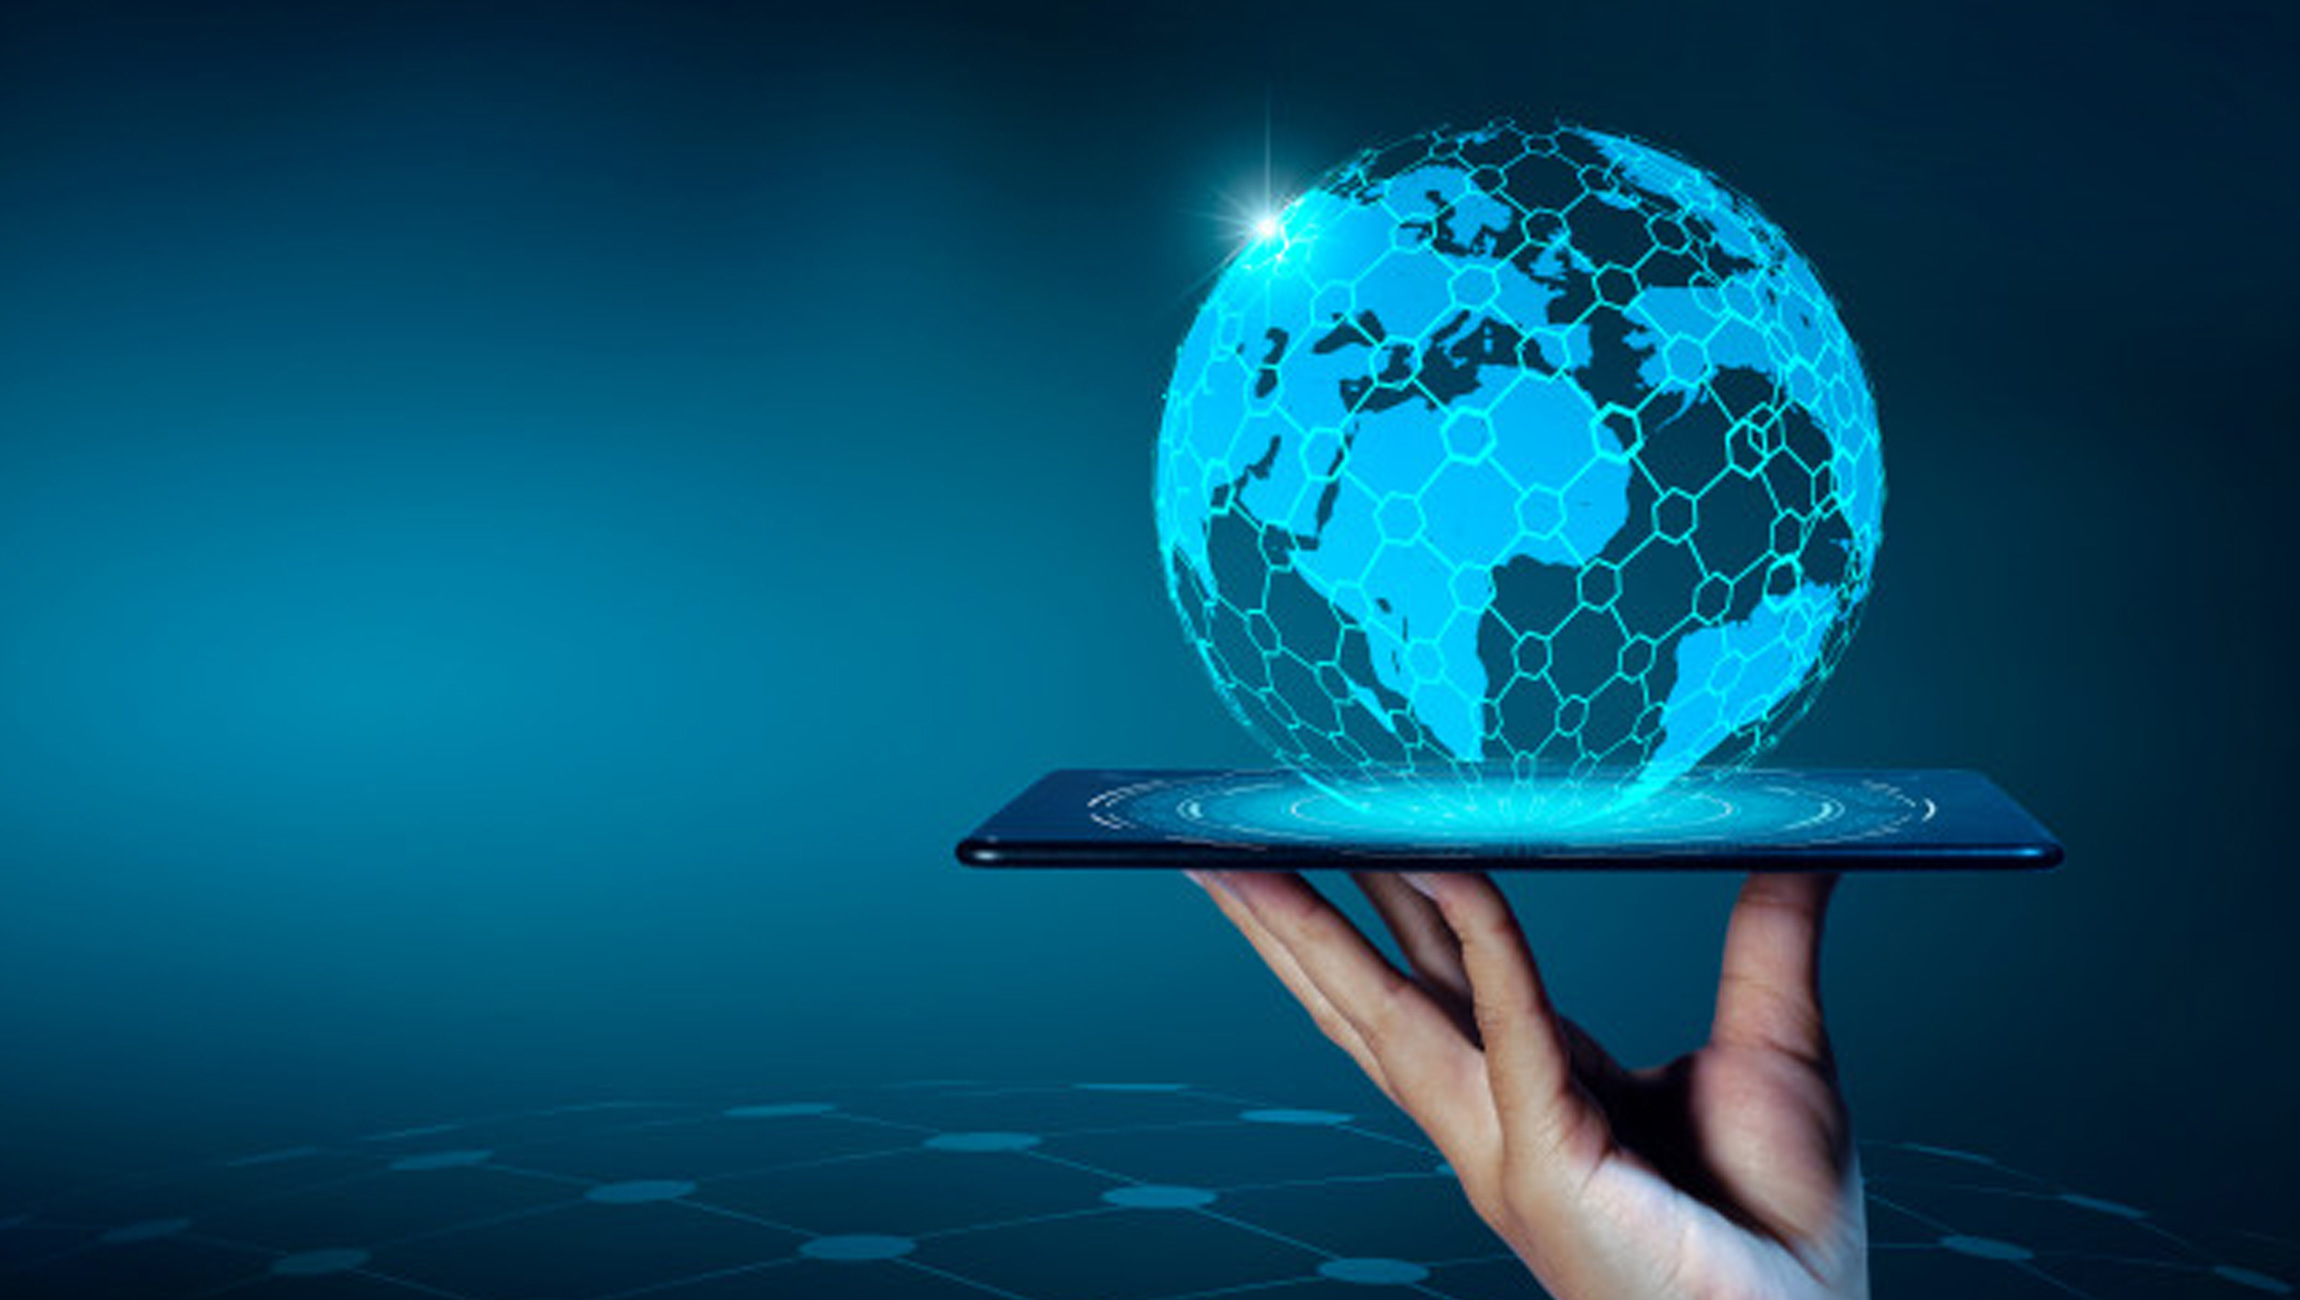 5 Ways Mobile is Driving the Next Wave of Technological Innovation